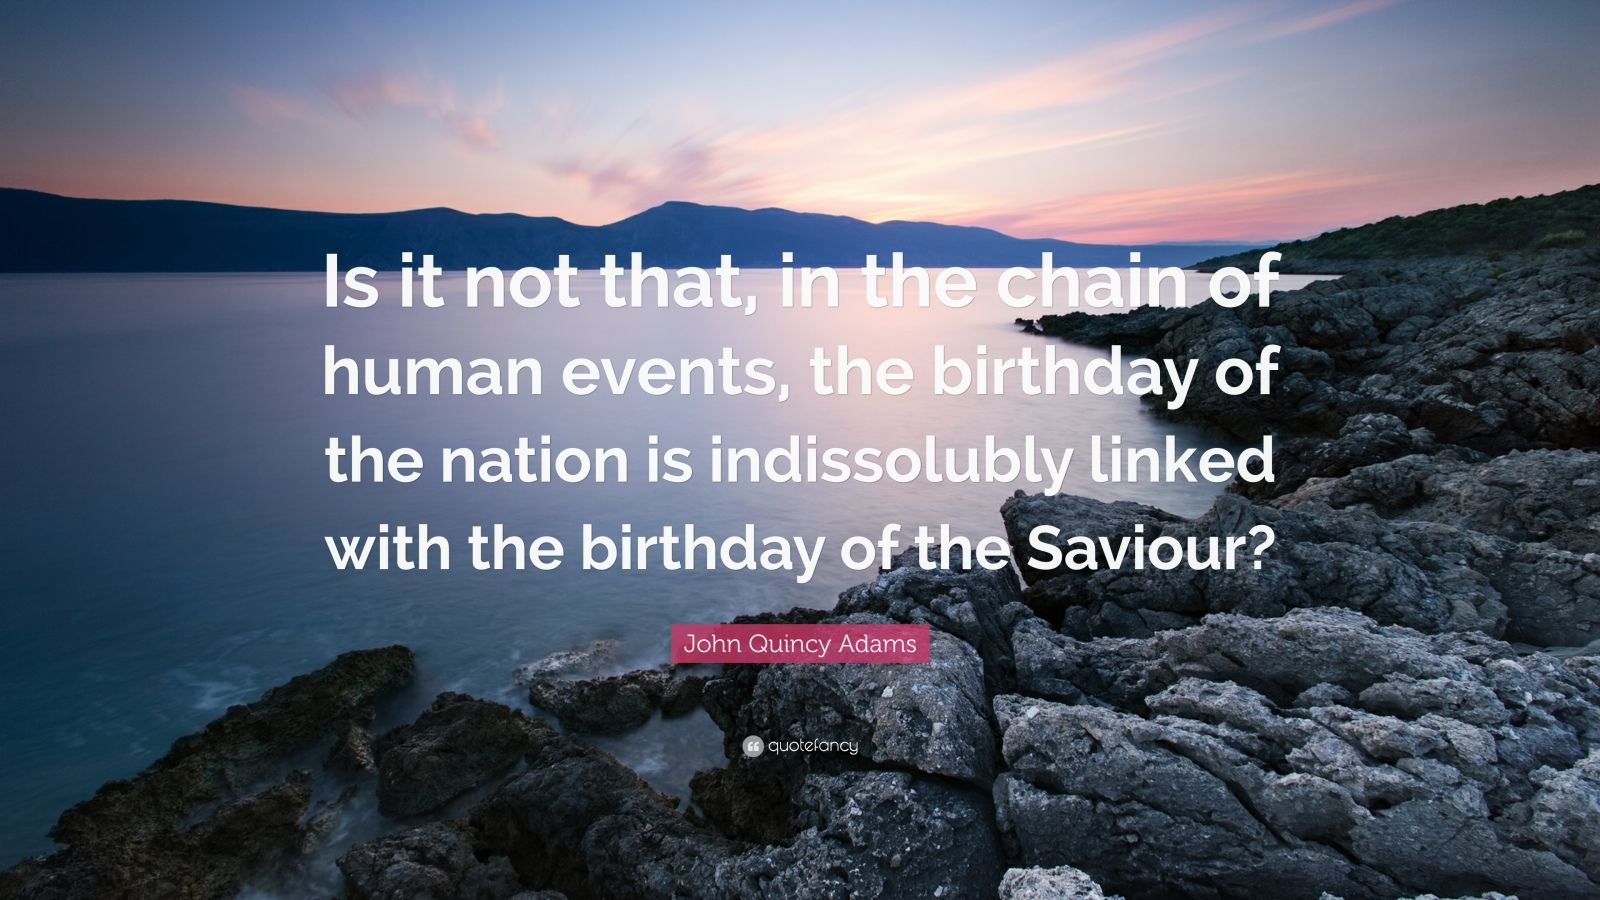 "John Quincy Adams Quote: ""Is it not that, in the chain of human events, the birthday of the nation is indissolubly linked with the birthday of the Saviour?"""